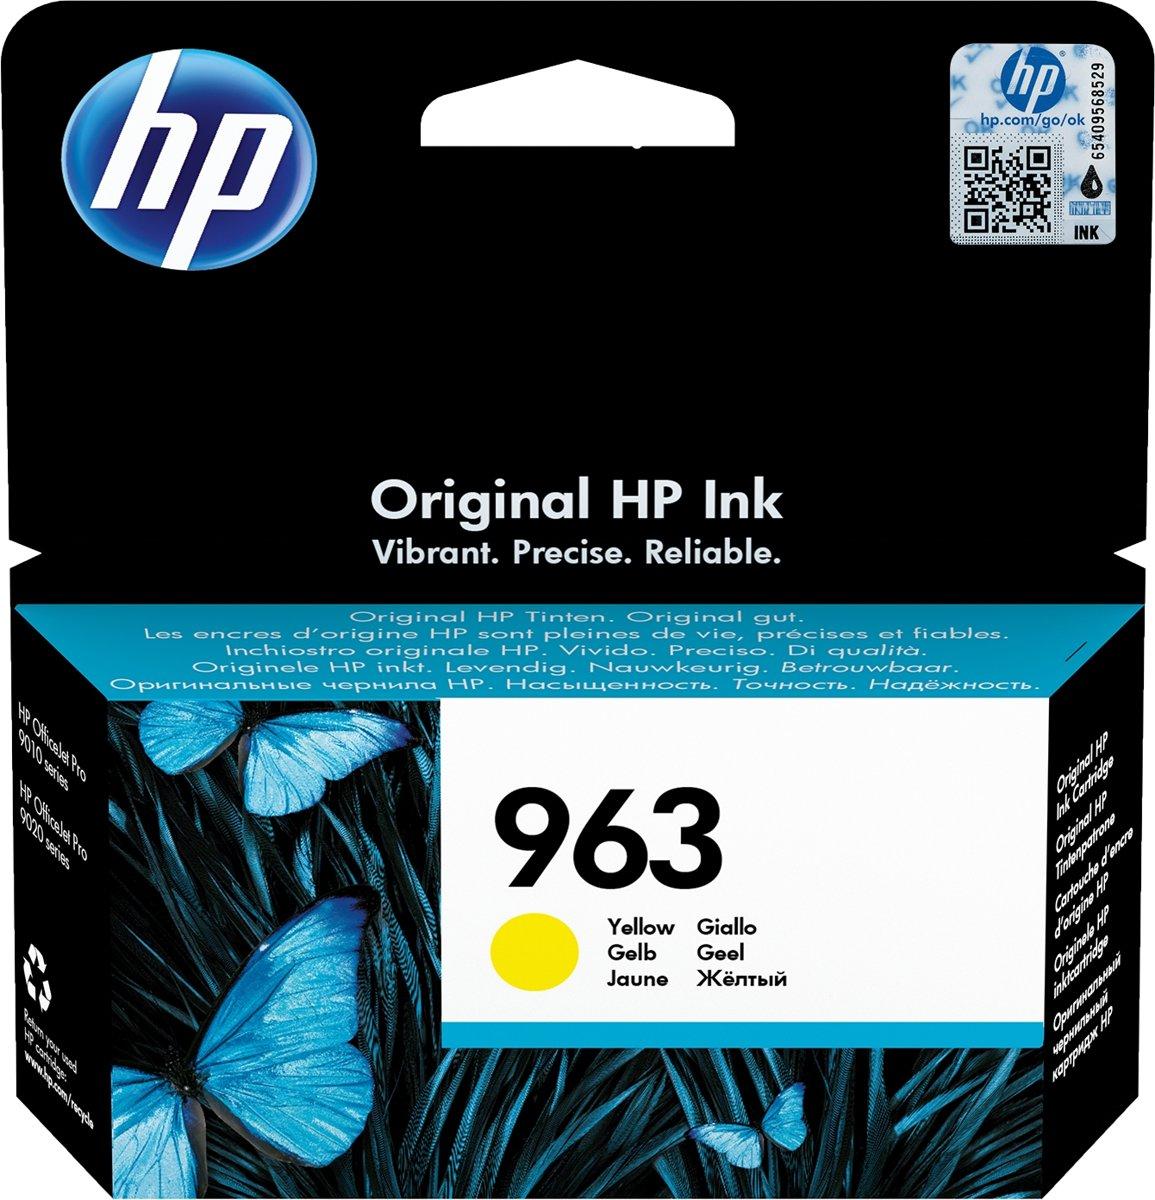 HP 963 (3JA25AE) Inktcartridge Geel